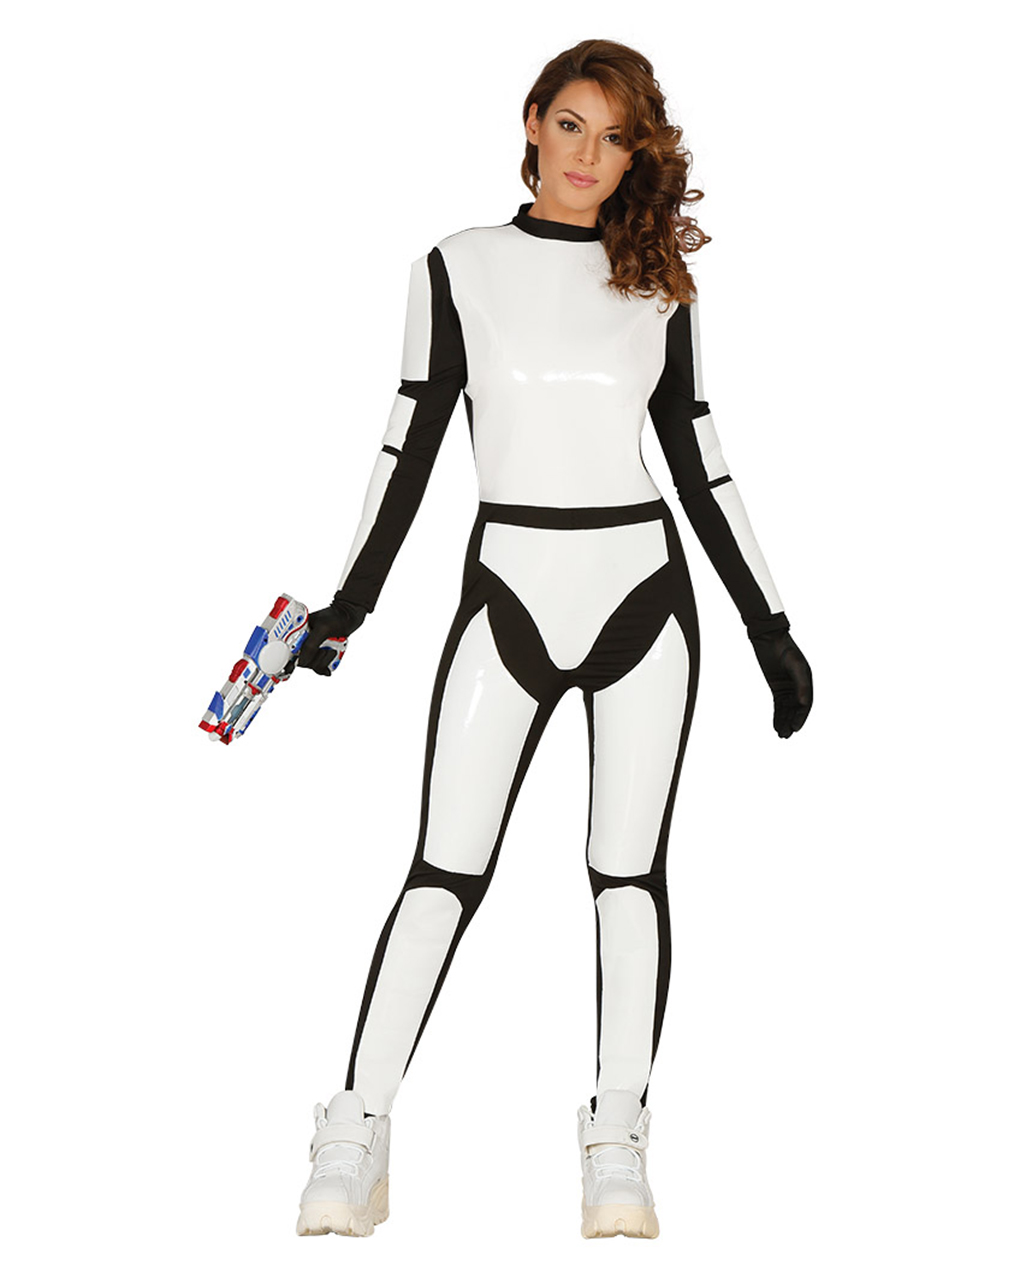 Space Soldier Costume  sc 1 st  Horror-Shop & Space Soldier Costume for Halloween | horror-shop.com